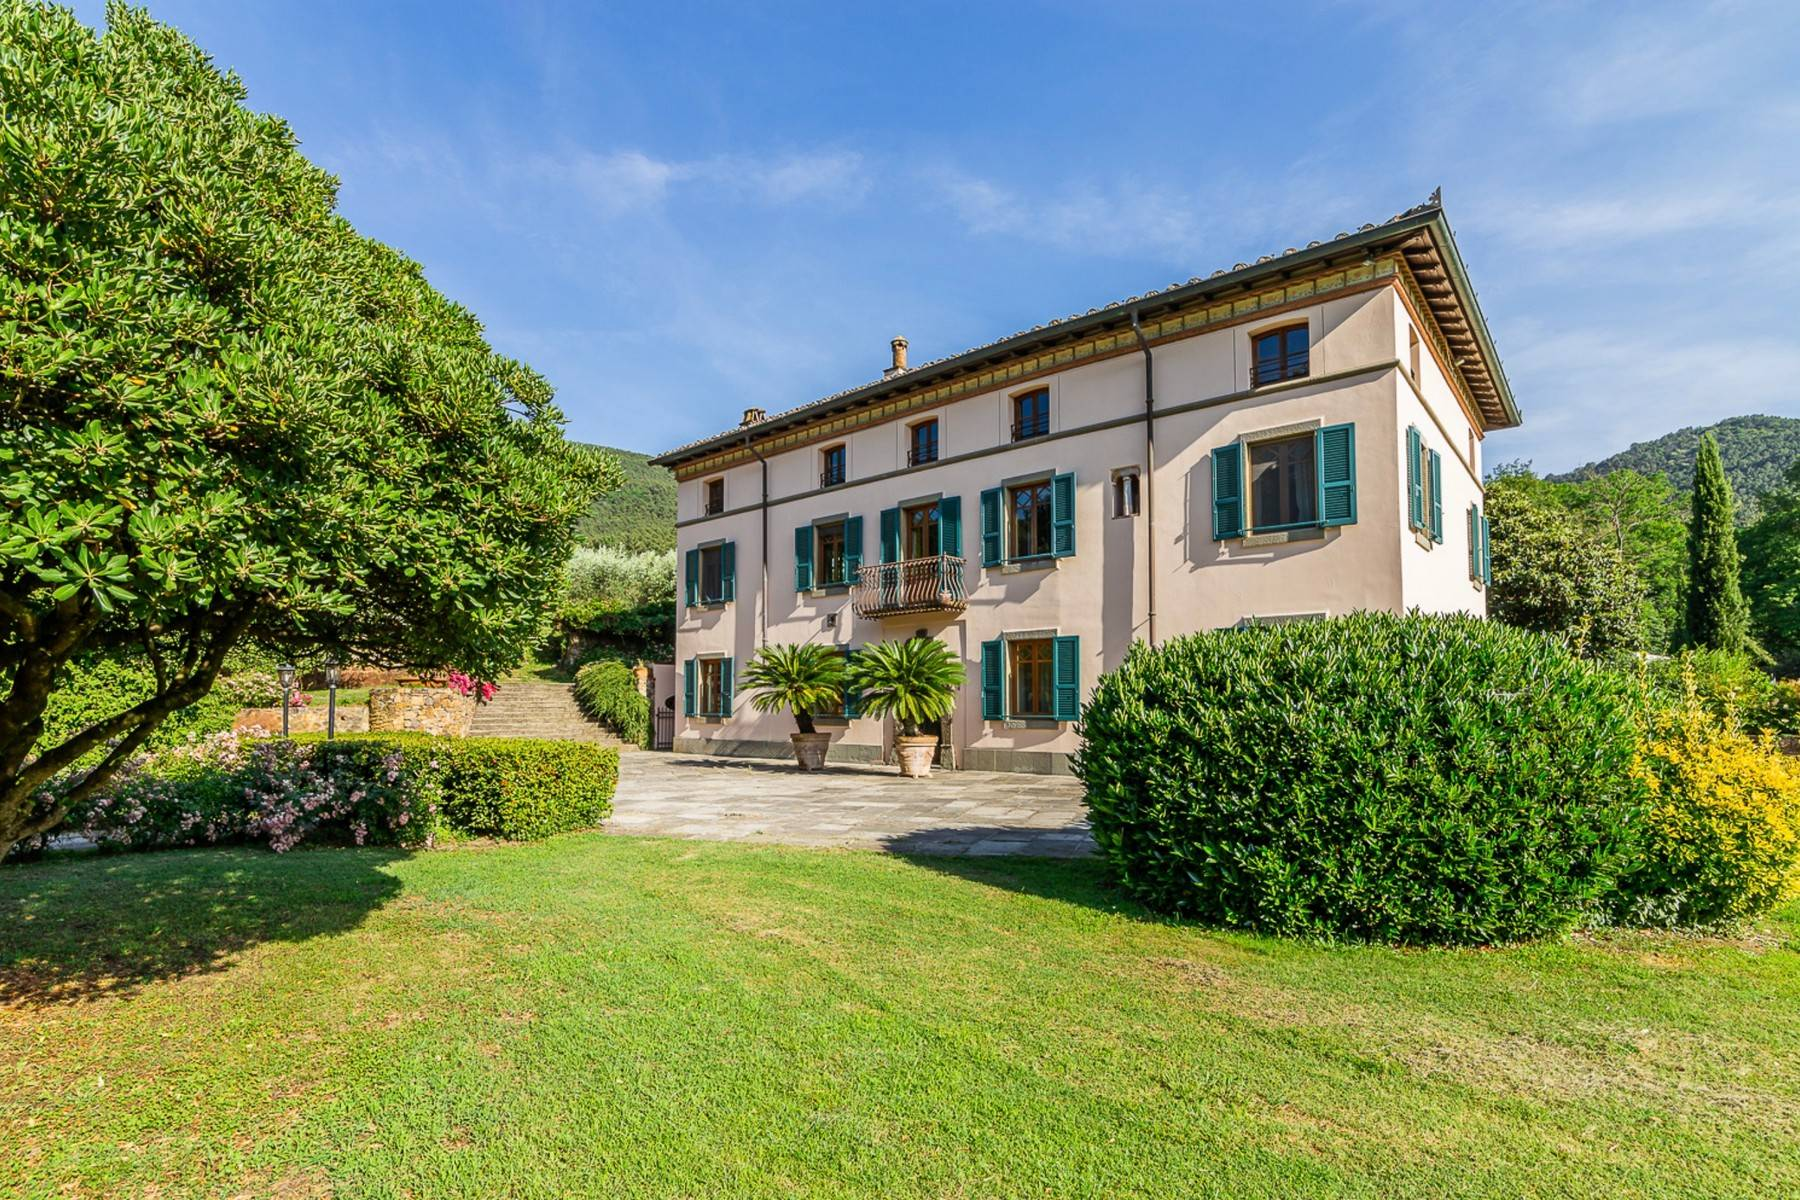 Majestic Luxury Villa with outbuildings on the hills south of Lucca - 5